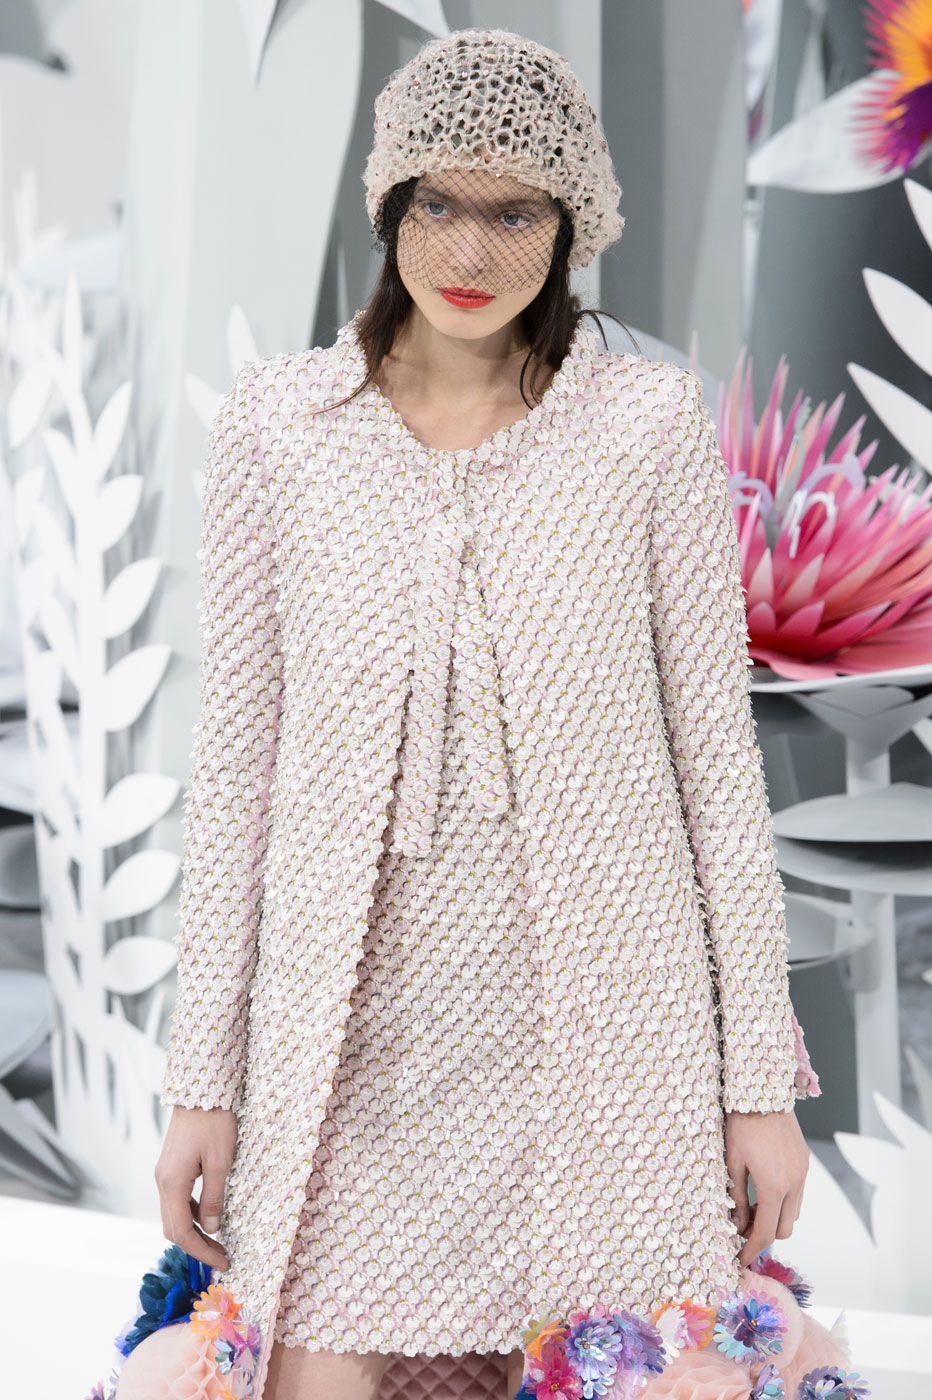 Chanel-fashion-runway-show-haute-couture-paris-spring-summer-2015-the-impression-106